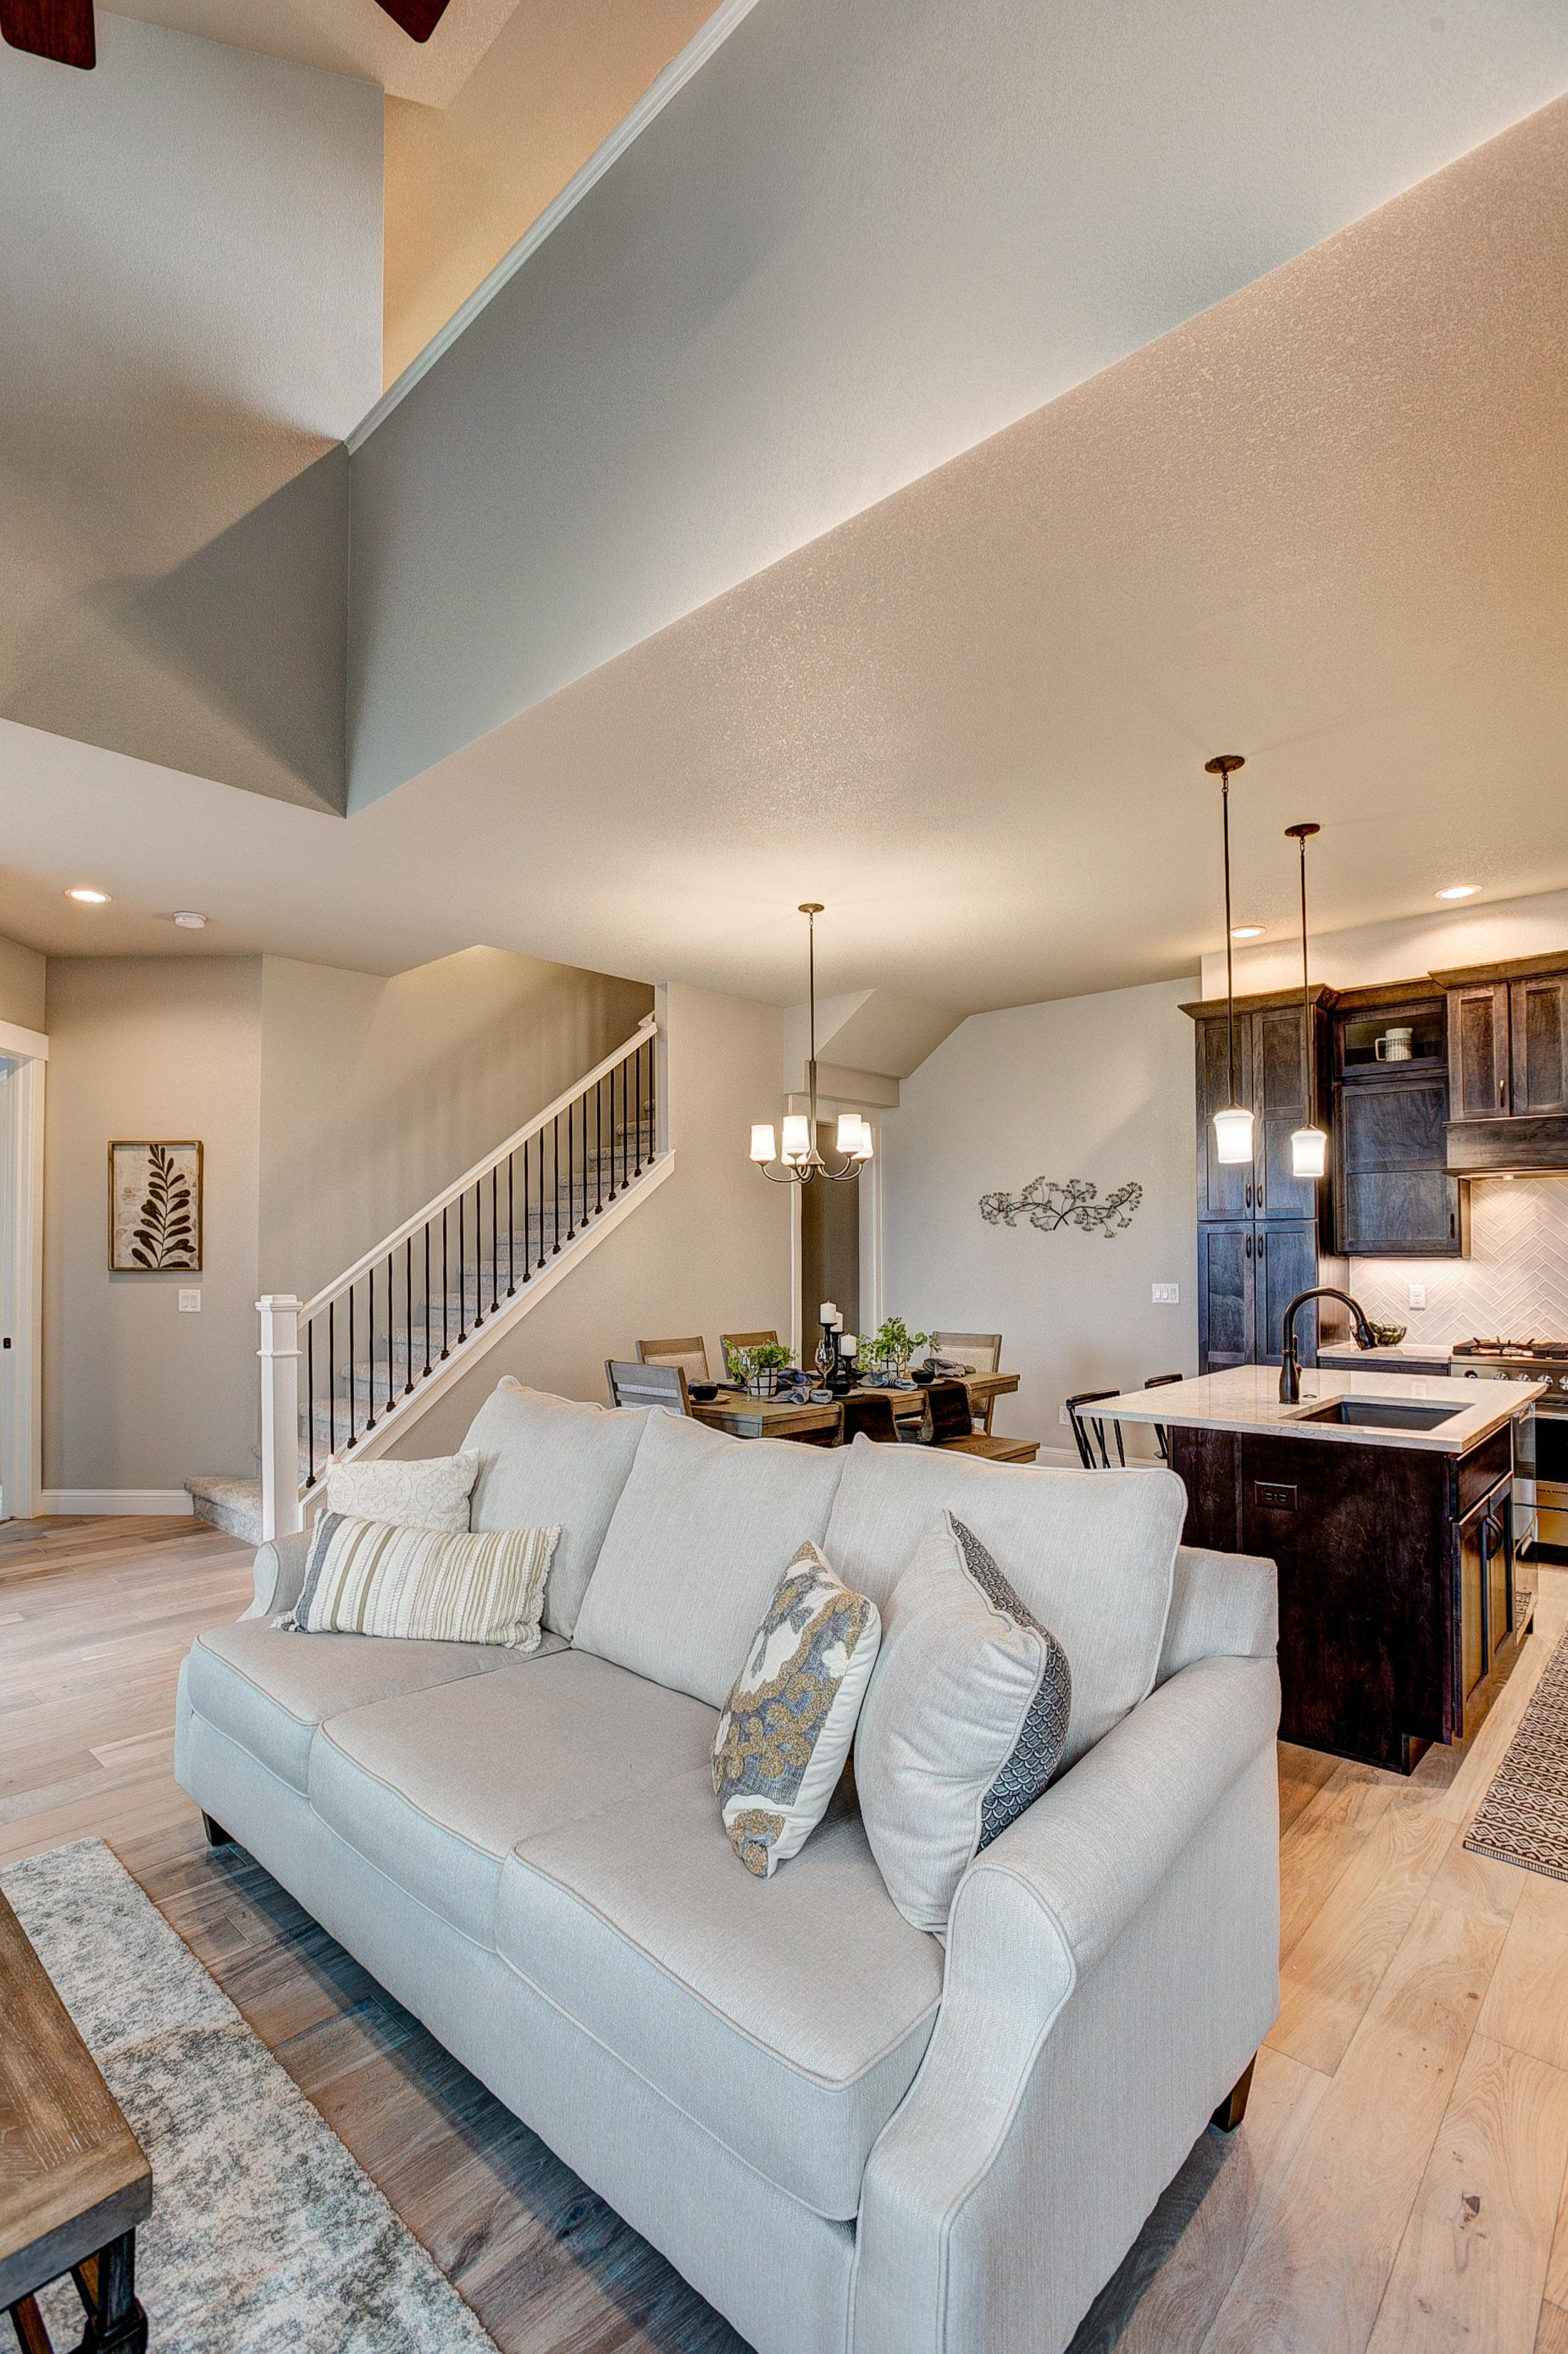 Living Area featured in the Summerlin By Landmark Homes  in Fort Collins-Loveland, CO